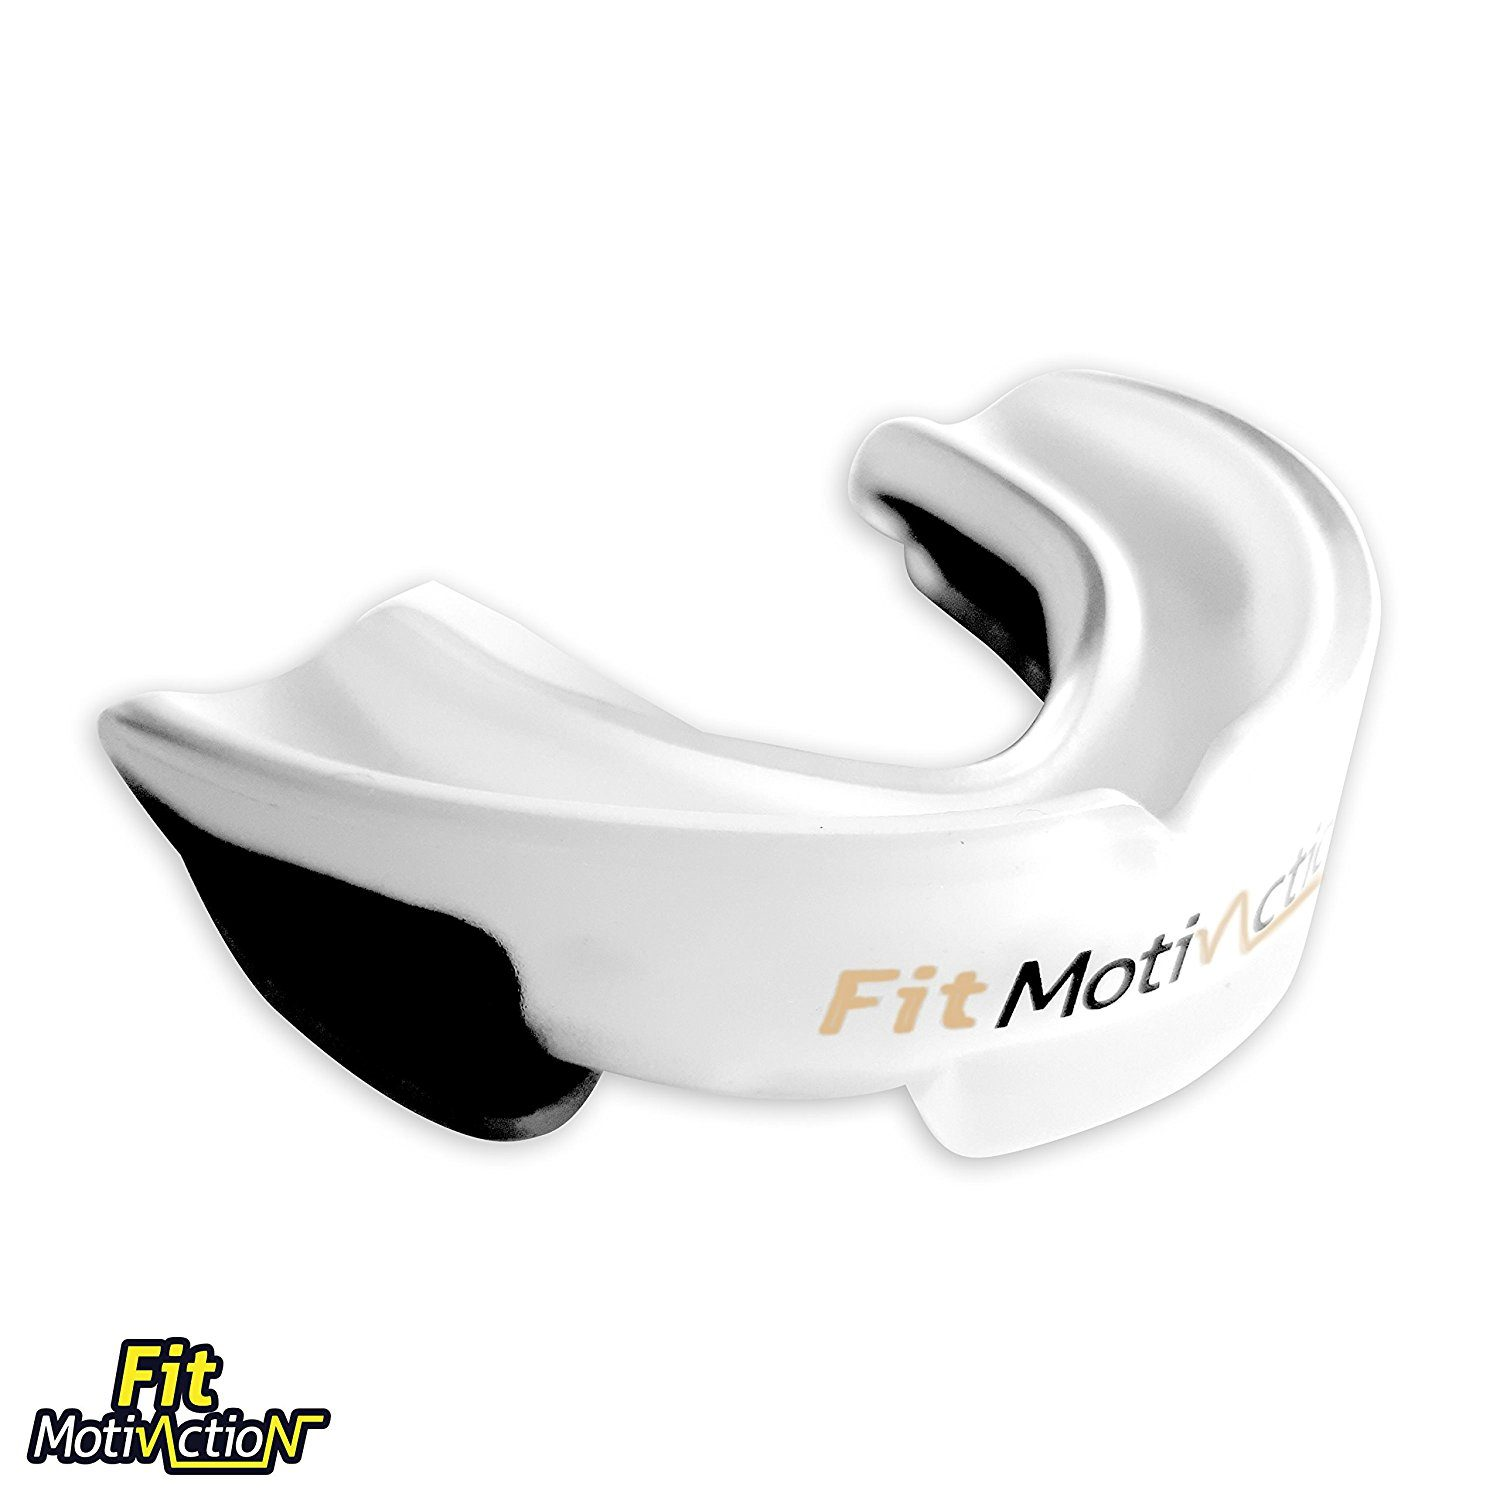 FitMotivaction Thermoformable